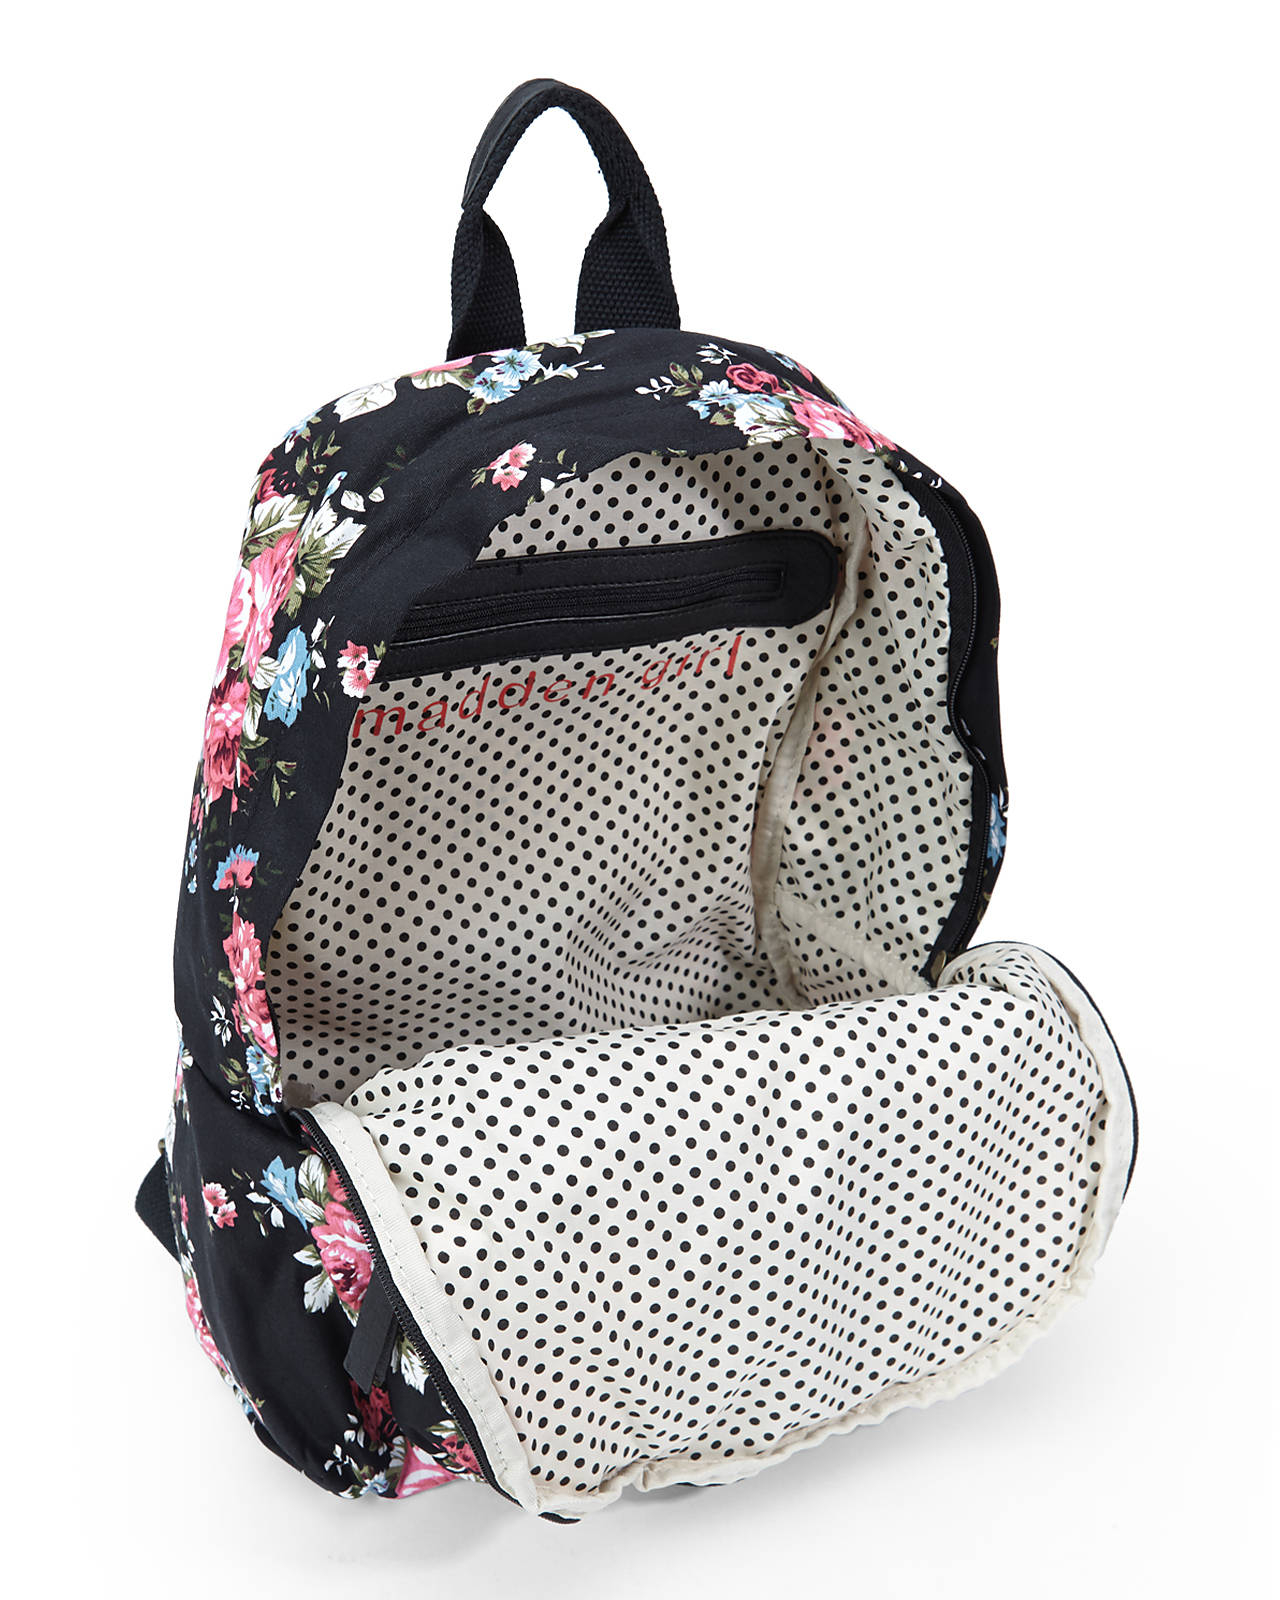 Madden girl Black & Rose Floral Backpack | Lyst